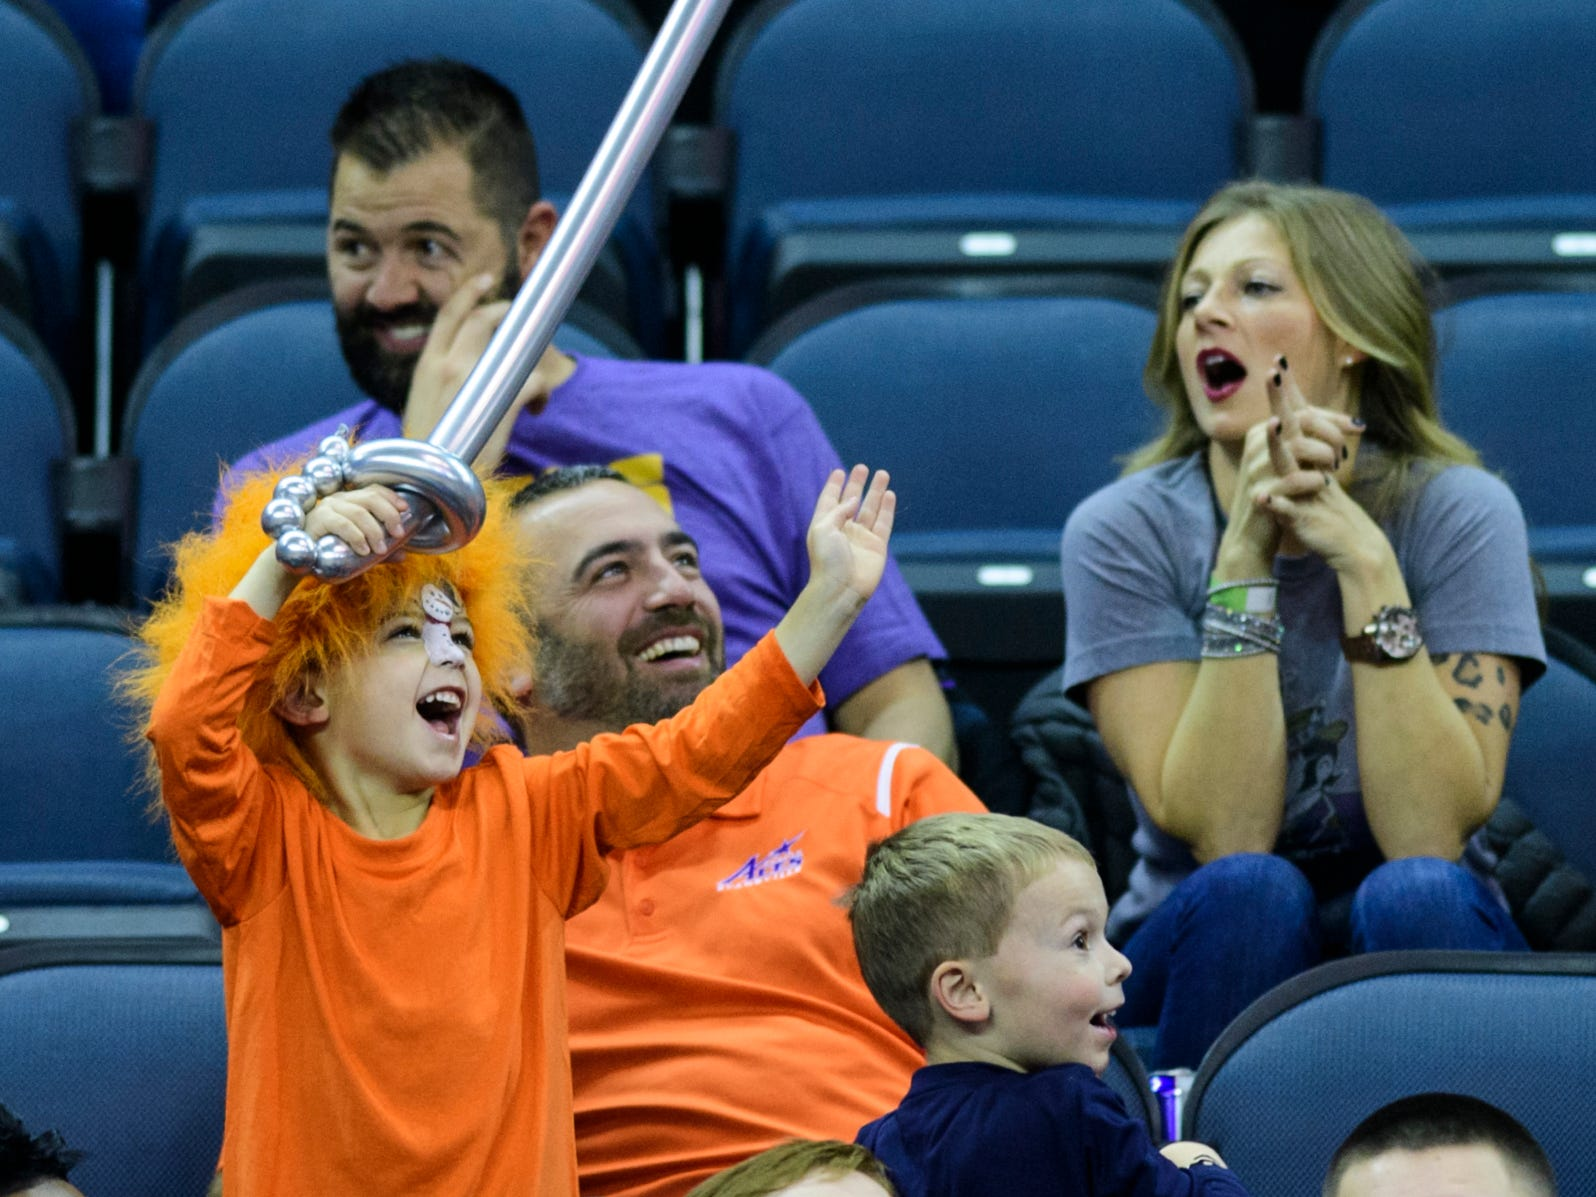 Five-year-old Sammie Garau, left, makes his father Sam Garau, back, laugh while attempting to be displayed on the big screen during the Jacksonville State Gamecocks vs University of Evansville Purple Aces basketball game at Ford Center in Evansville, Ind., Saturday, Dec. 15, 2018. The Aces fell to the Gamecocks 55-50.